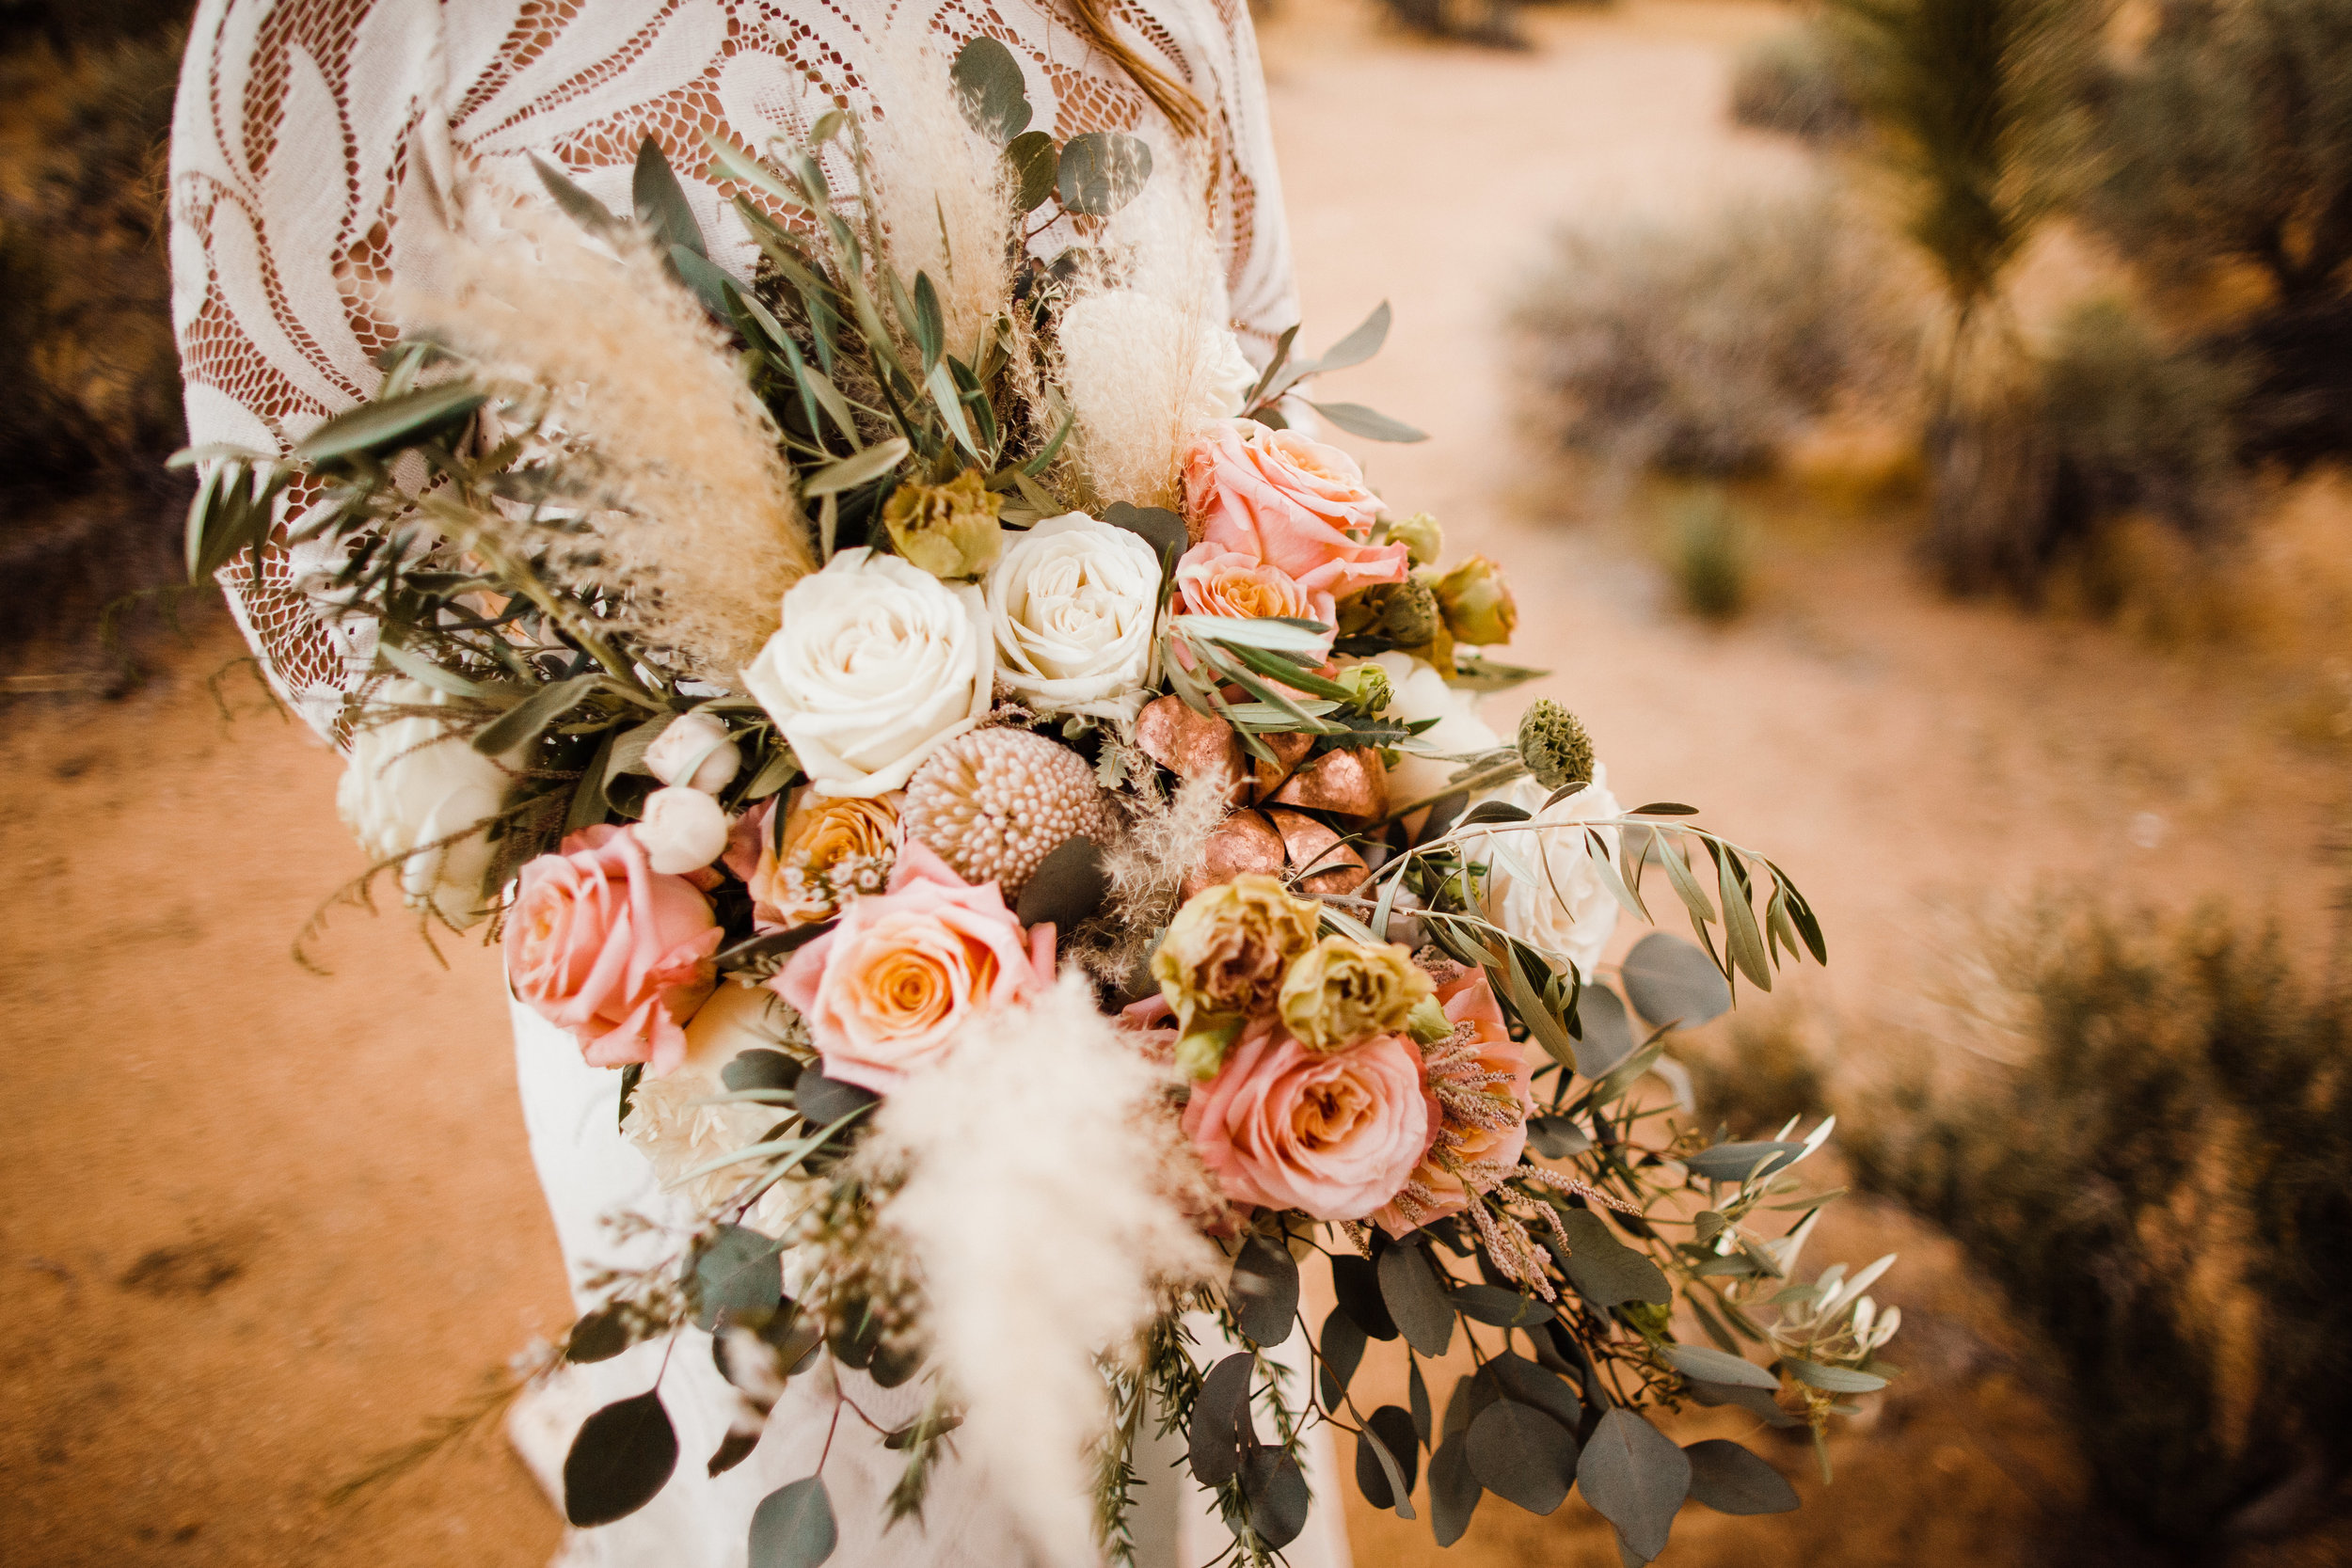 bridal bouquet of dried pampas grass, feathery elements and a copper rose mixed in with white and pink flowers